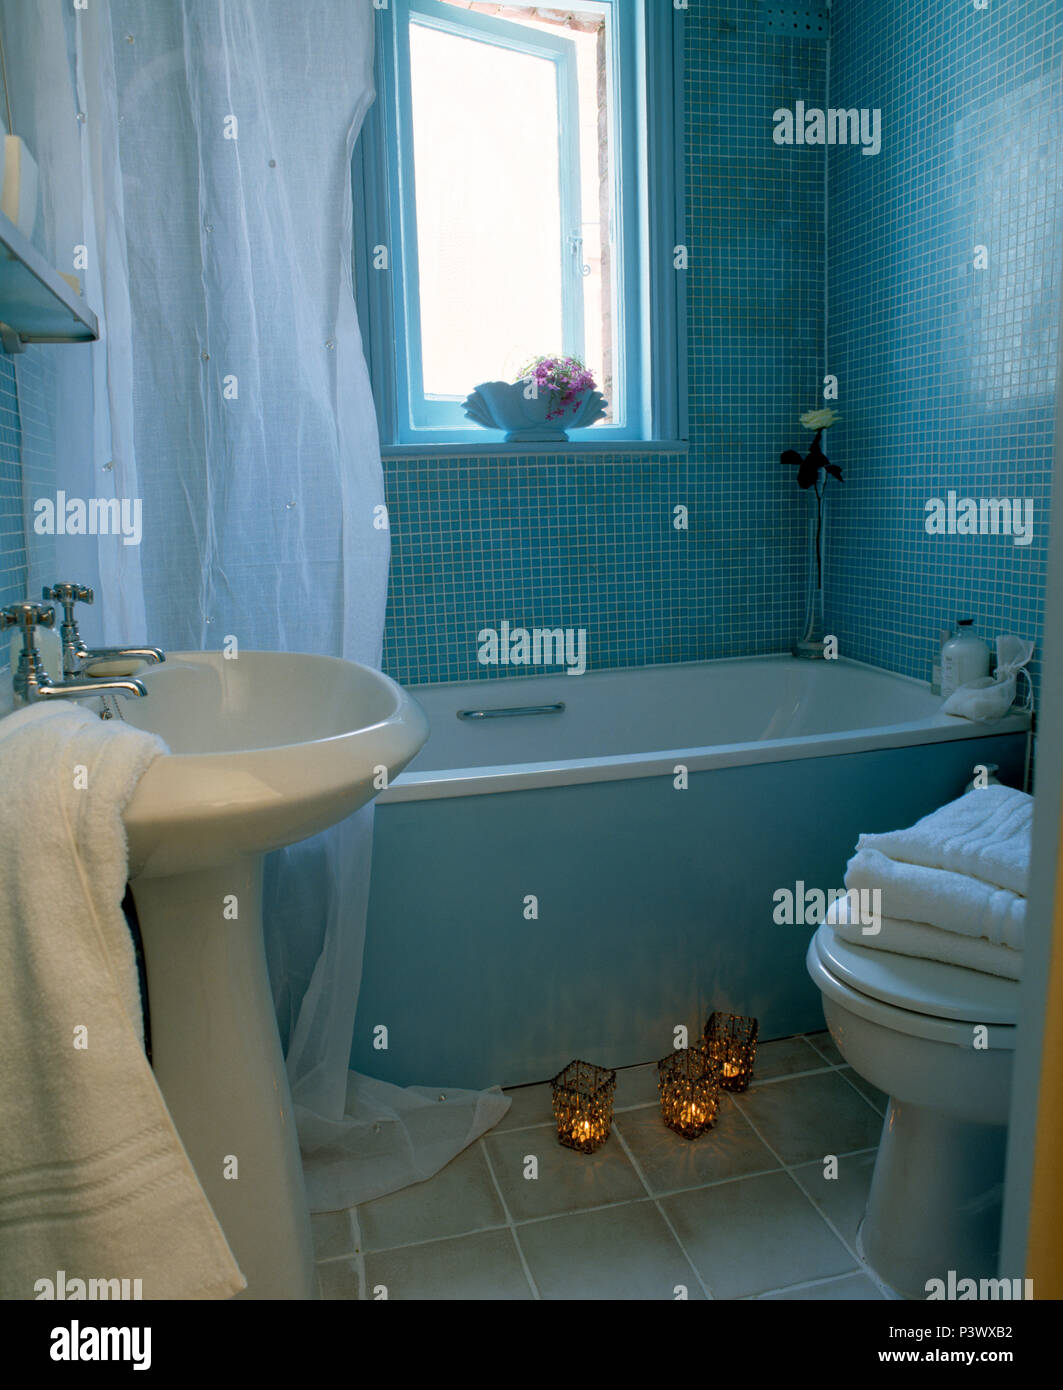 White shower curtain on bath in blue mosaic tiled bathroom with ...